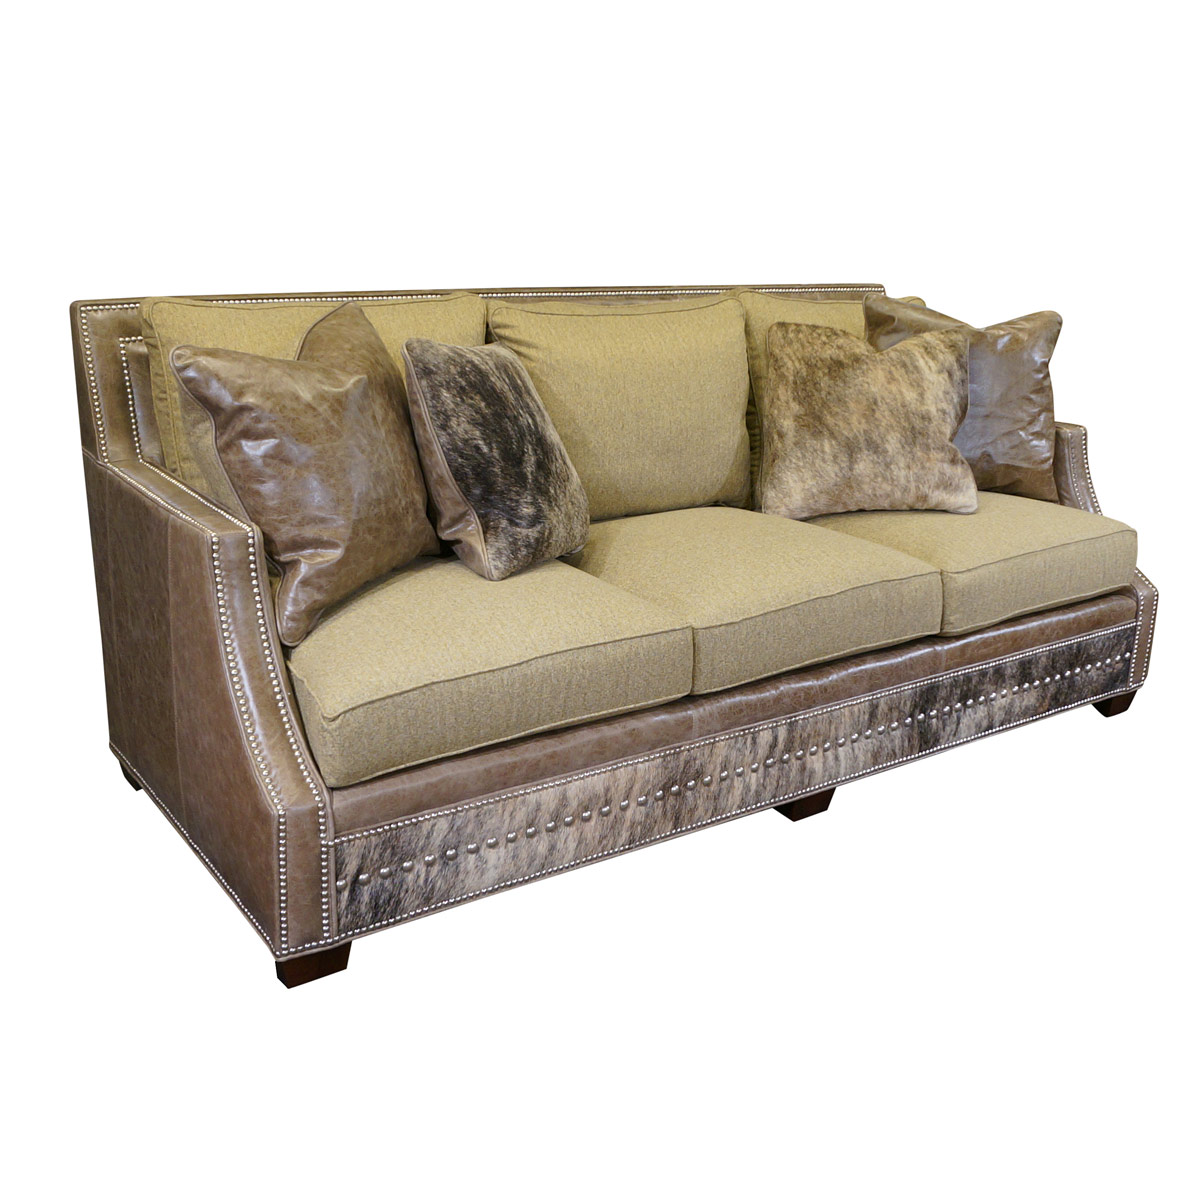 Black Forest Decor Adrian sofa